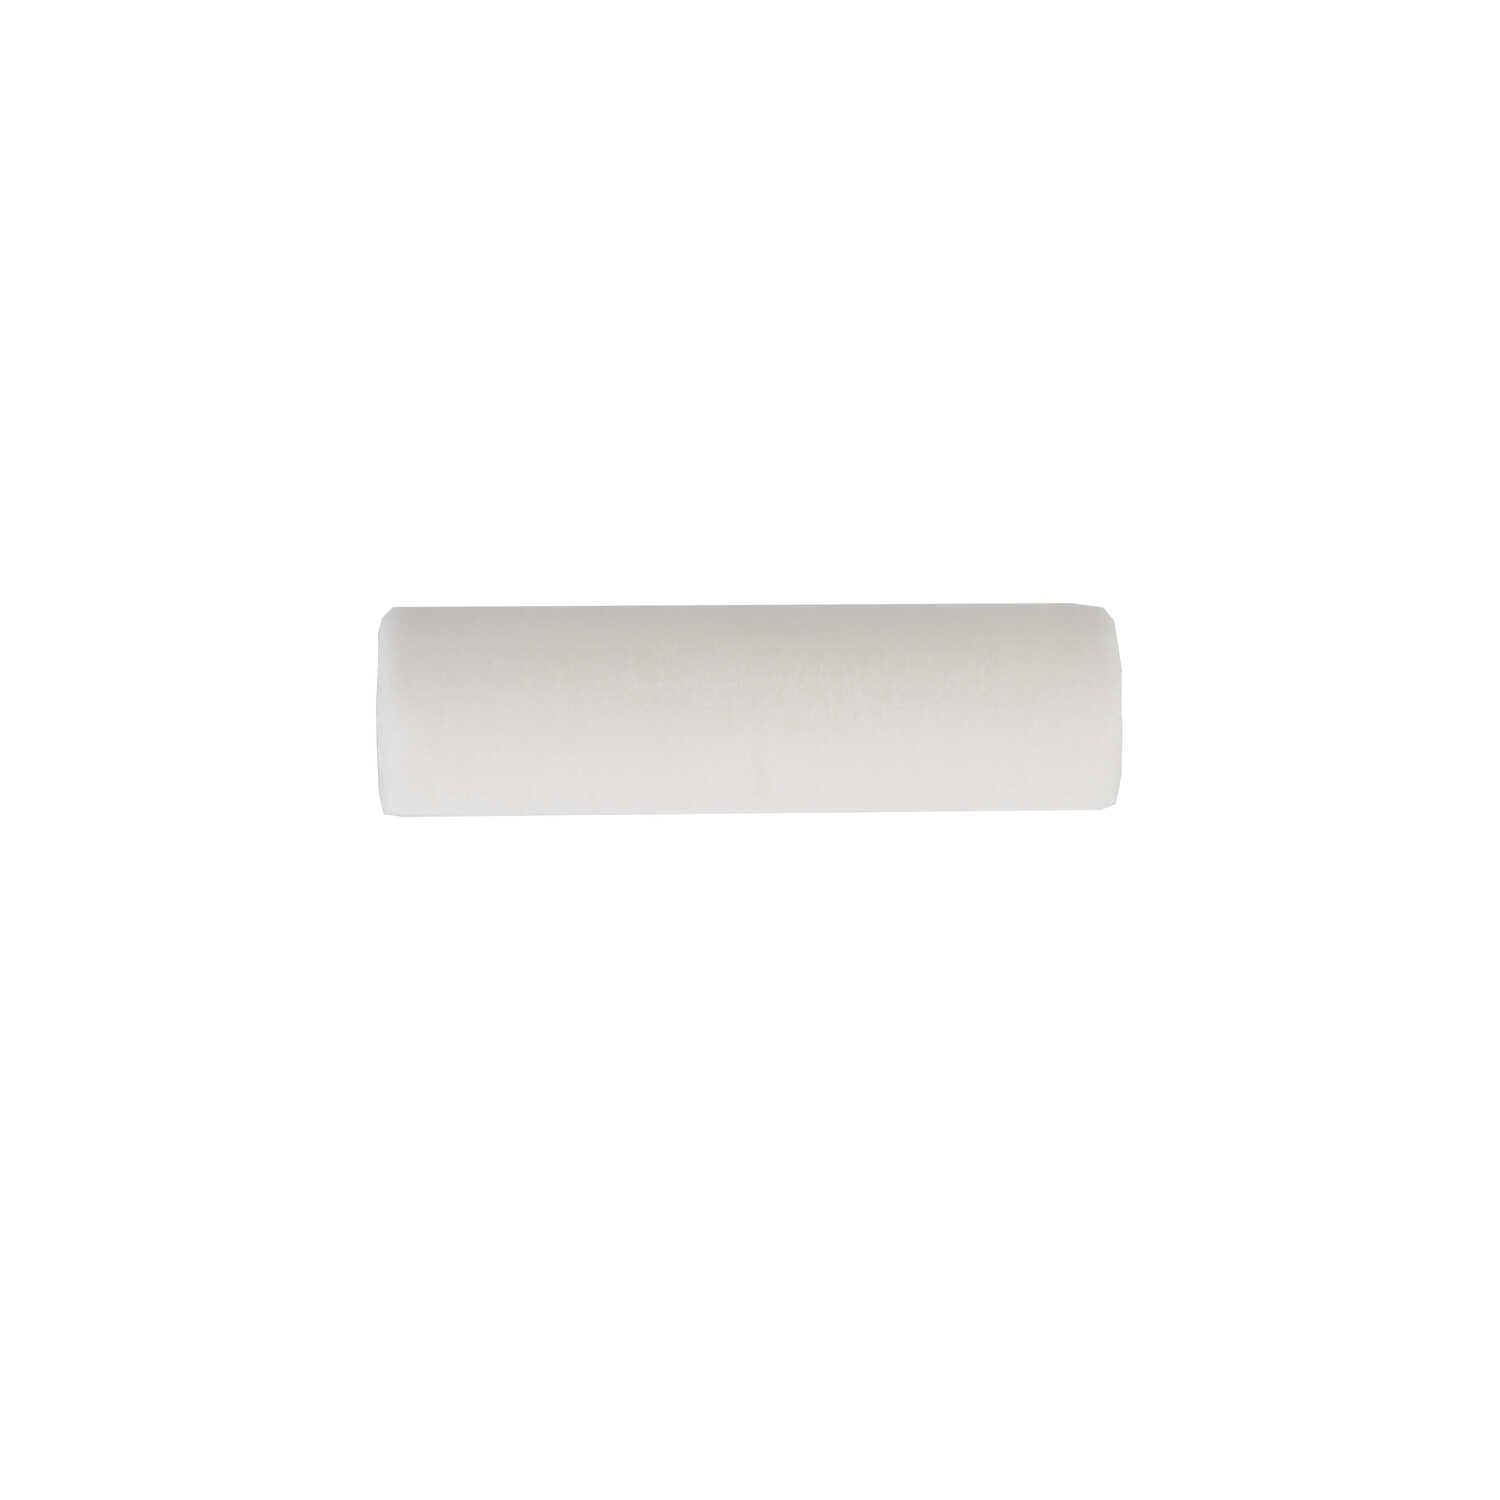 Wooster  Super Doo-Z  Fabric  3/16 in.  x 7 in. W Regular  Paint Roller Cover  For Smooth Surfaces 1